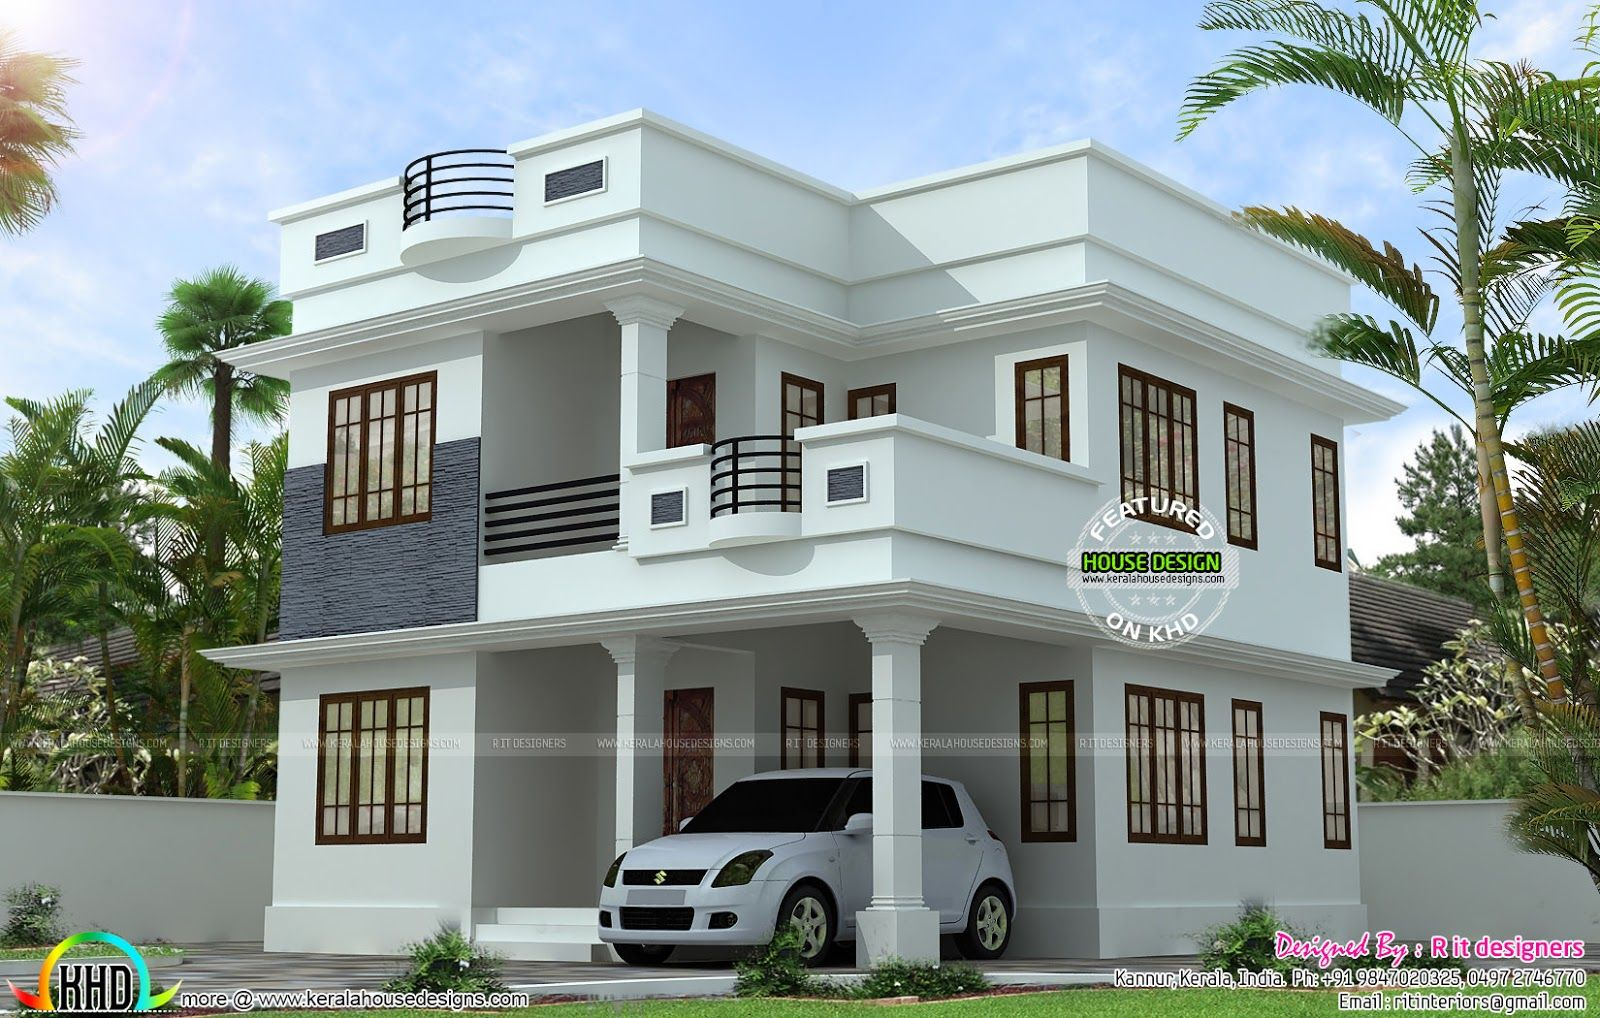 neat and simple small house plan kerala home design and floor plans - Small House Designs